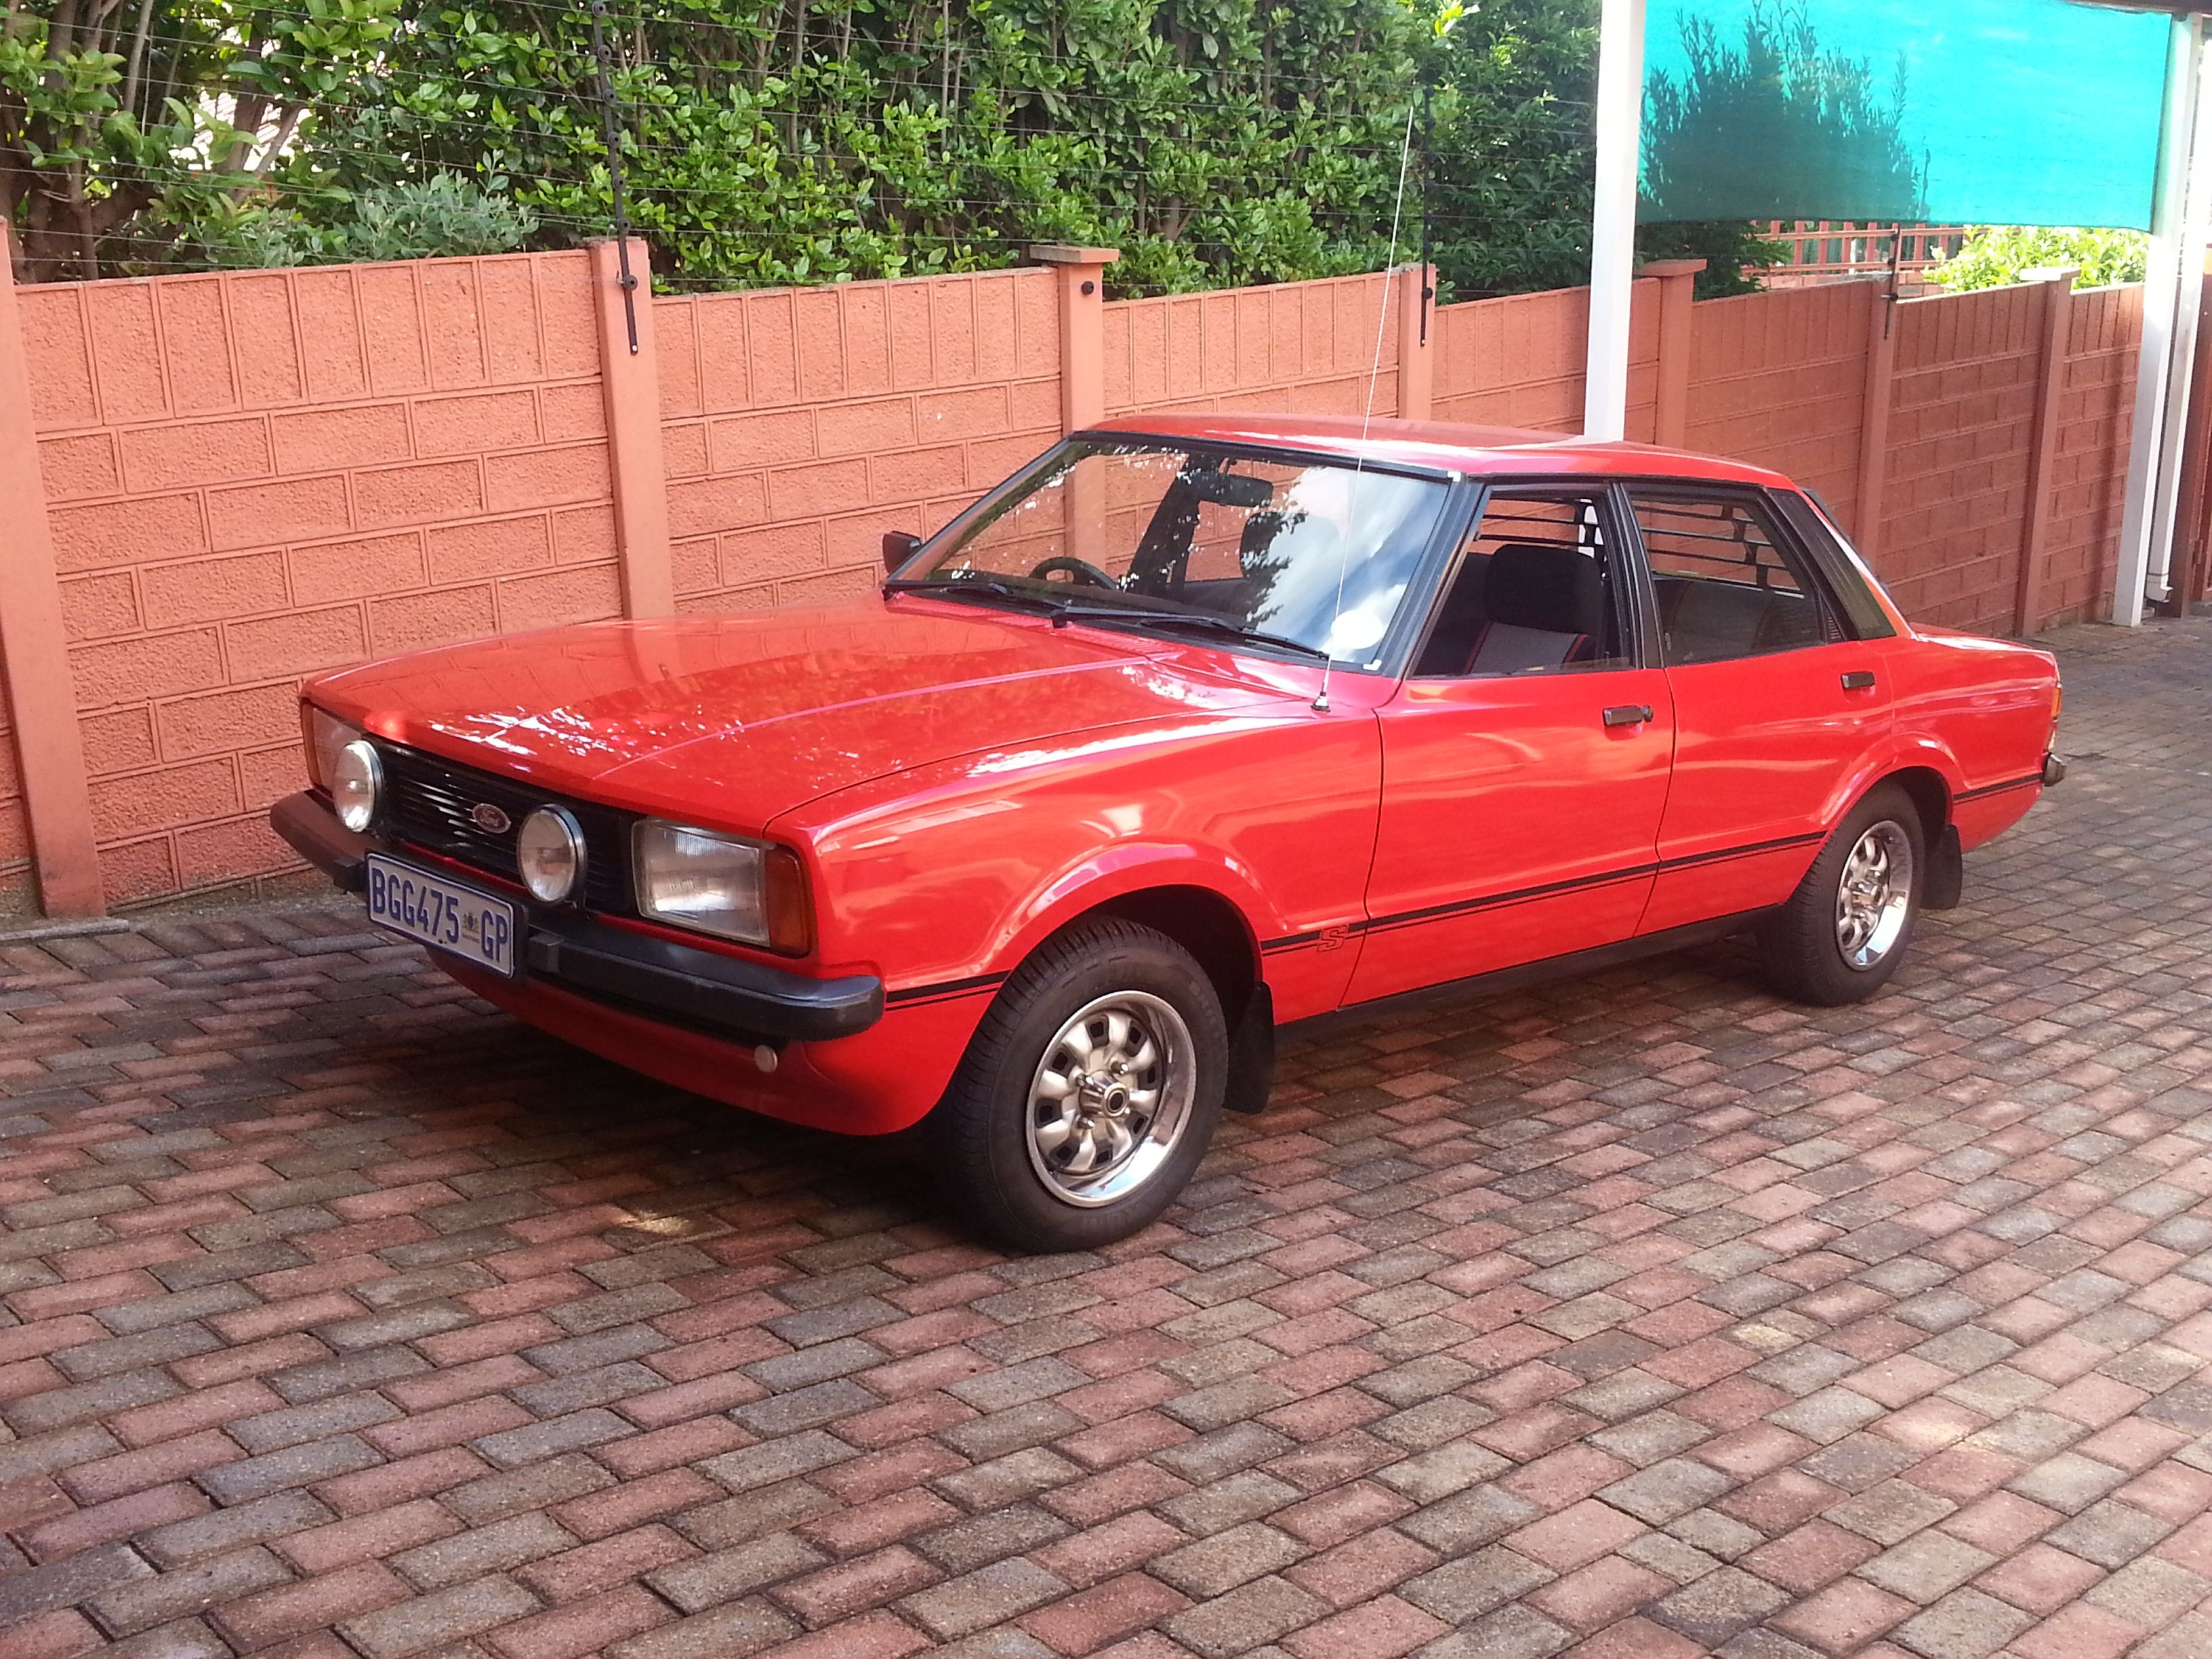 79 Ford Cortina 3 0 S Ford Classic Cars Classic Cars Car Ford